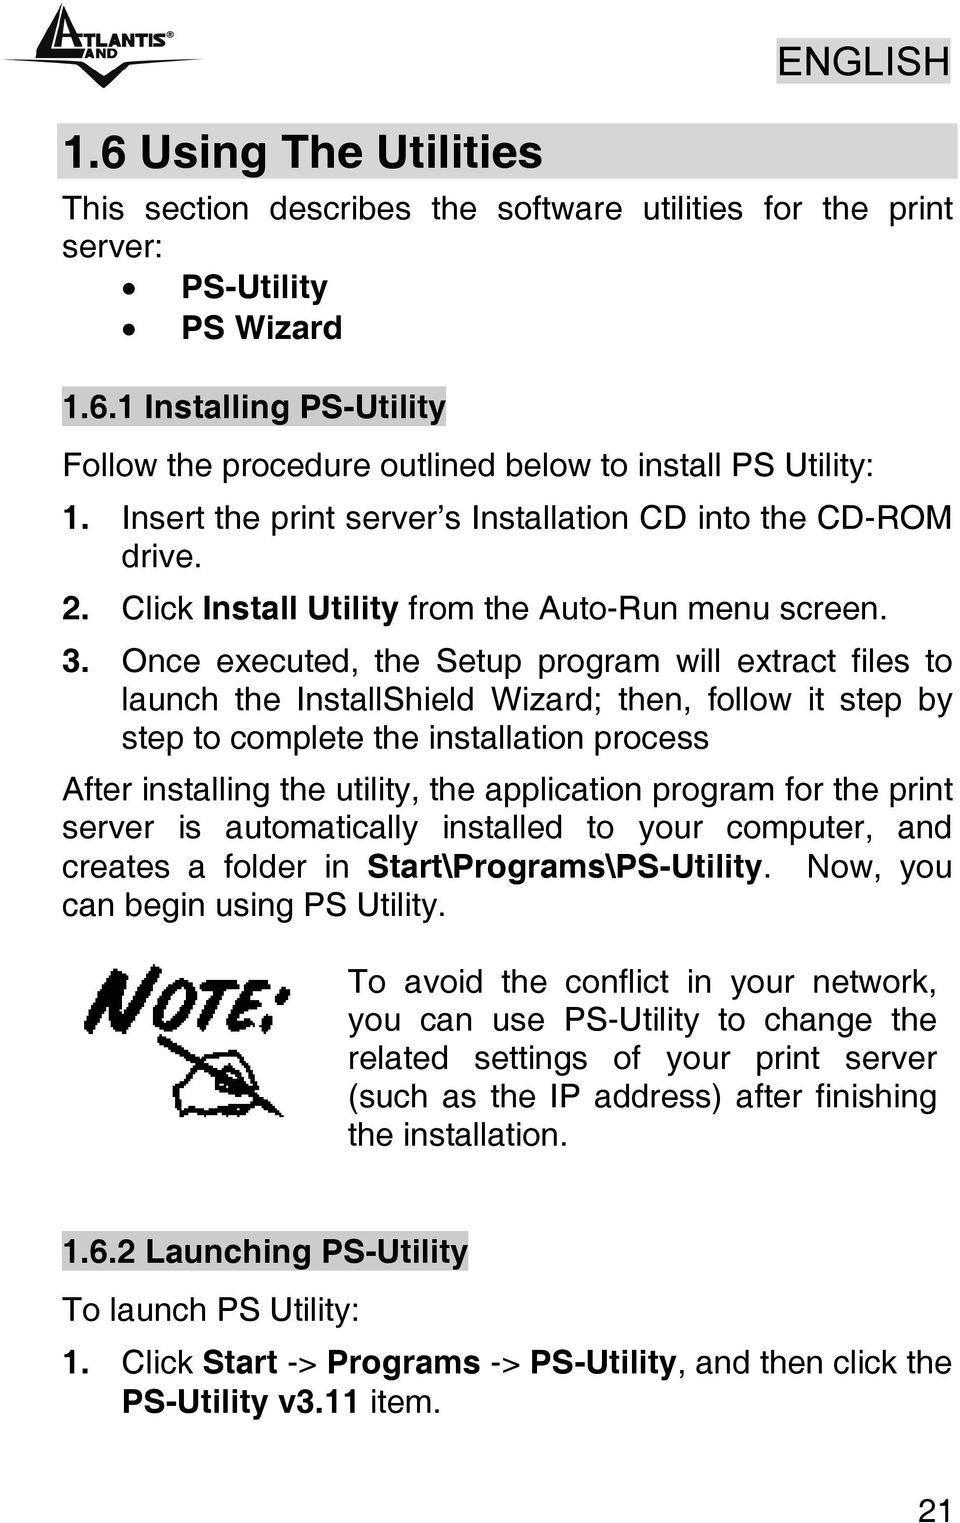 Once executed, the Setup program will extract files to launch the InstallShield Wizard; then, follow it step by step to complete the installation process After installing the utility, the application